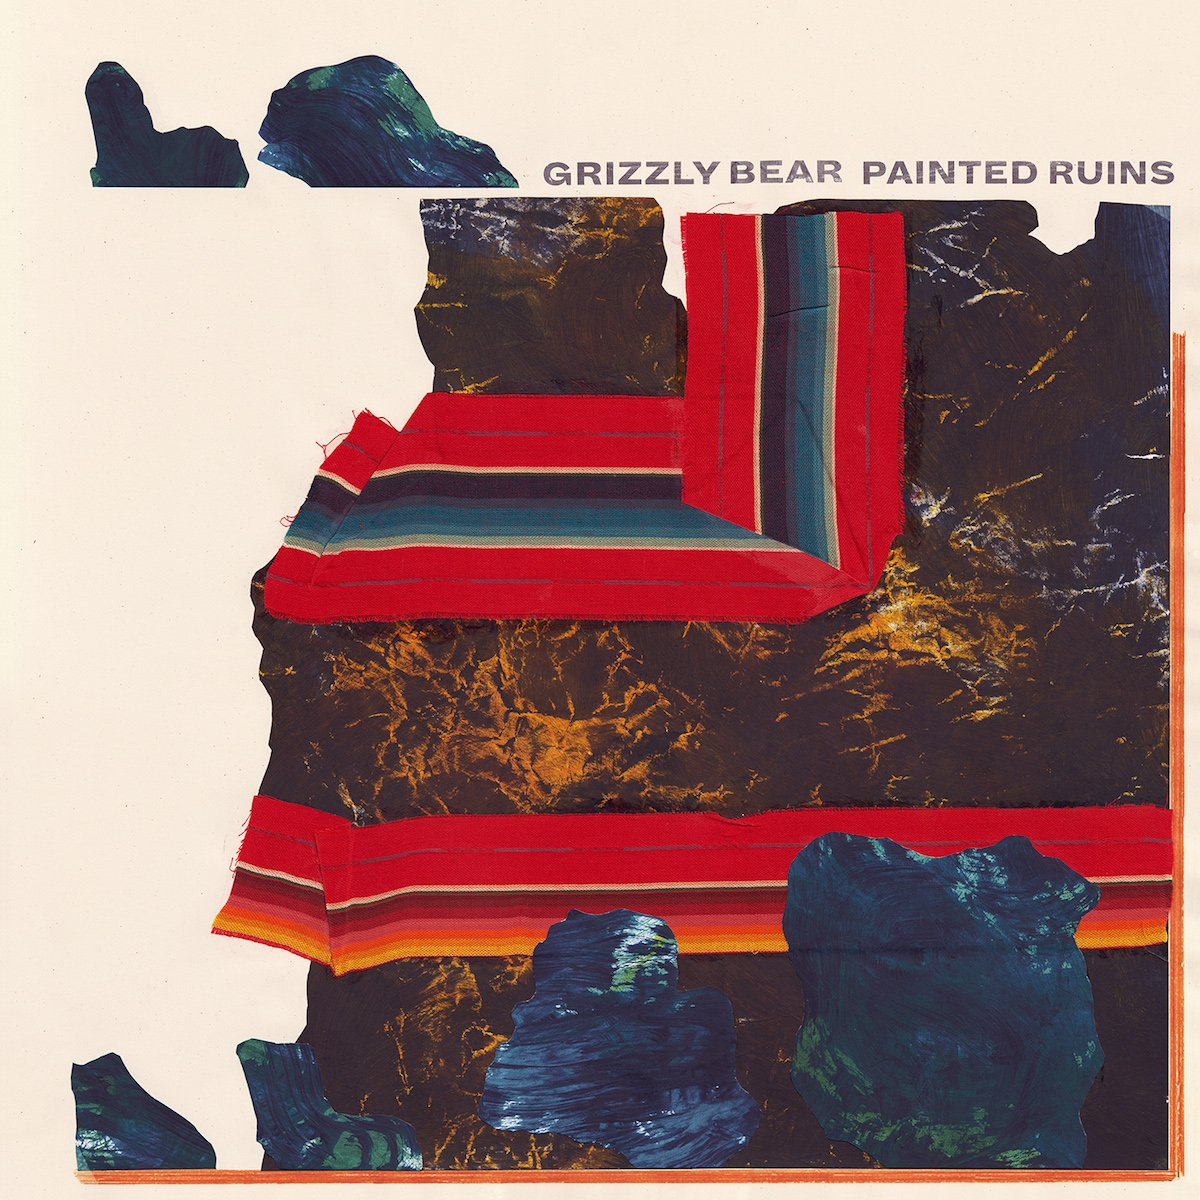 Grizzly Bear_Painted Ruins_album cover